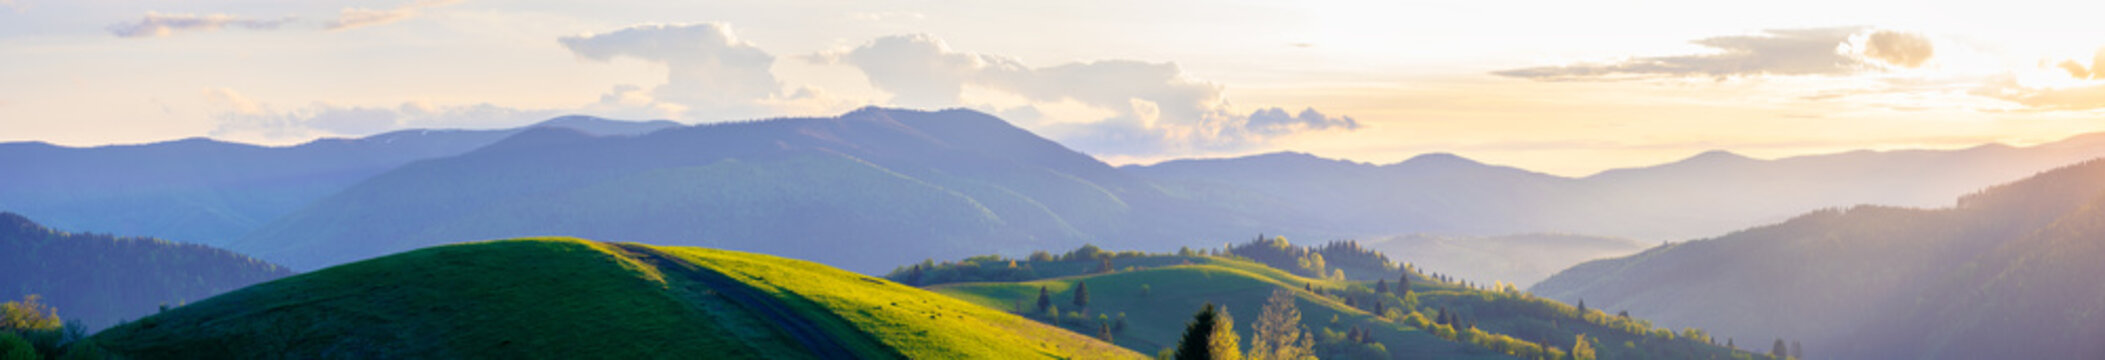 panorama of mountainous countryside in springtime at dusk. path through rolling hills. ridge in the distance. clouds on the sky. beautiful rural landscape of carpathians